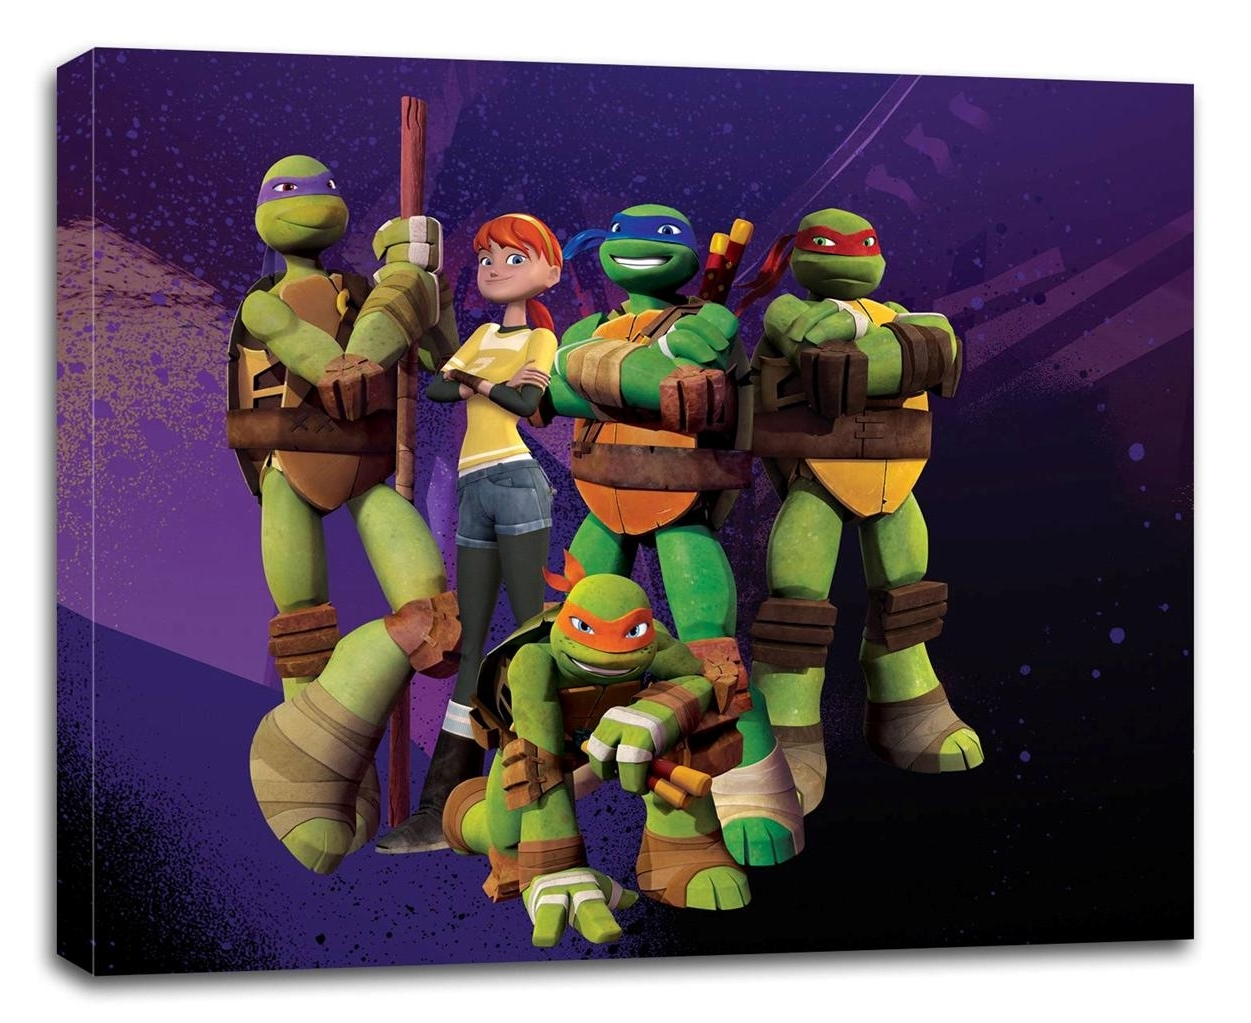 Tmnt Ninja Turtles Canvas Print Wall Decor Art Giclee Kids Bedroom Regarding Best And Newest Tmnt Wall Art (View 13 of 15)